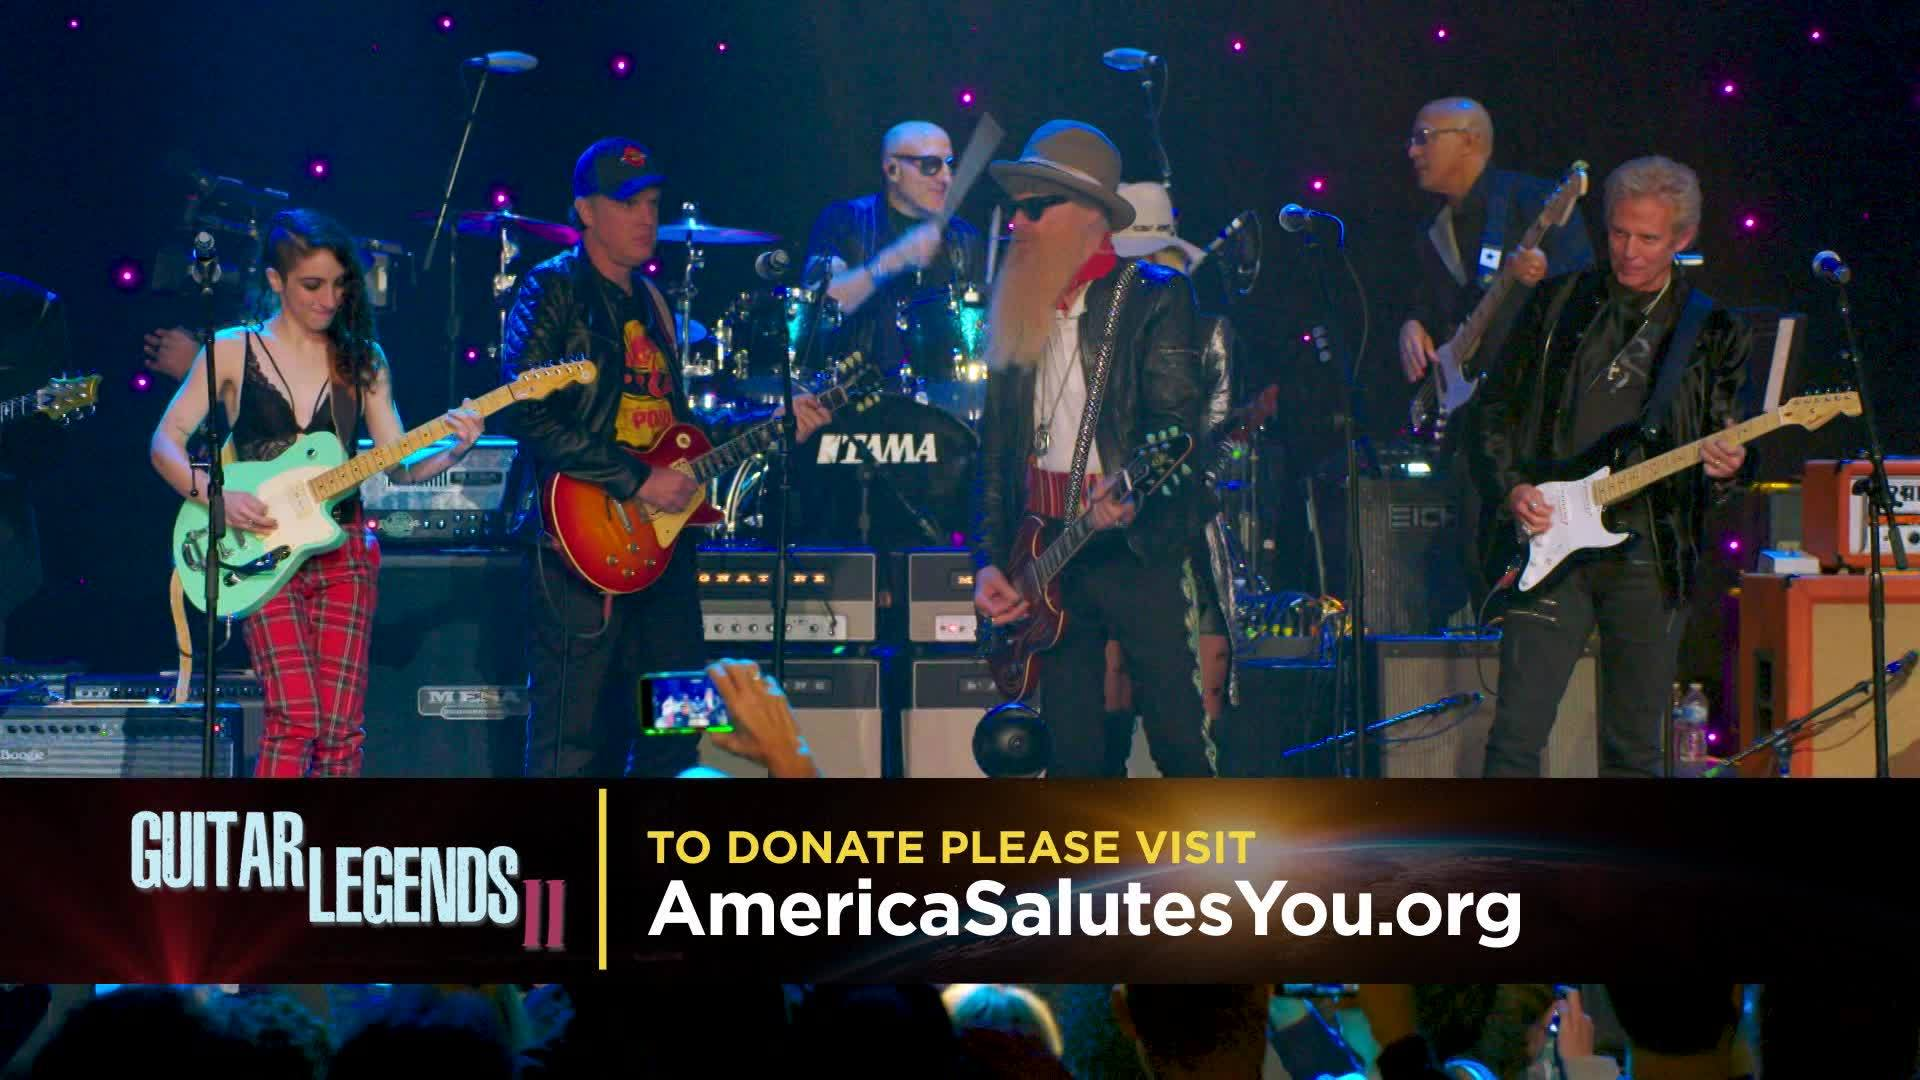 America Salutes You | Guitar Legends II Airs Saturday on The Gulf Coast CW